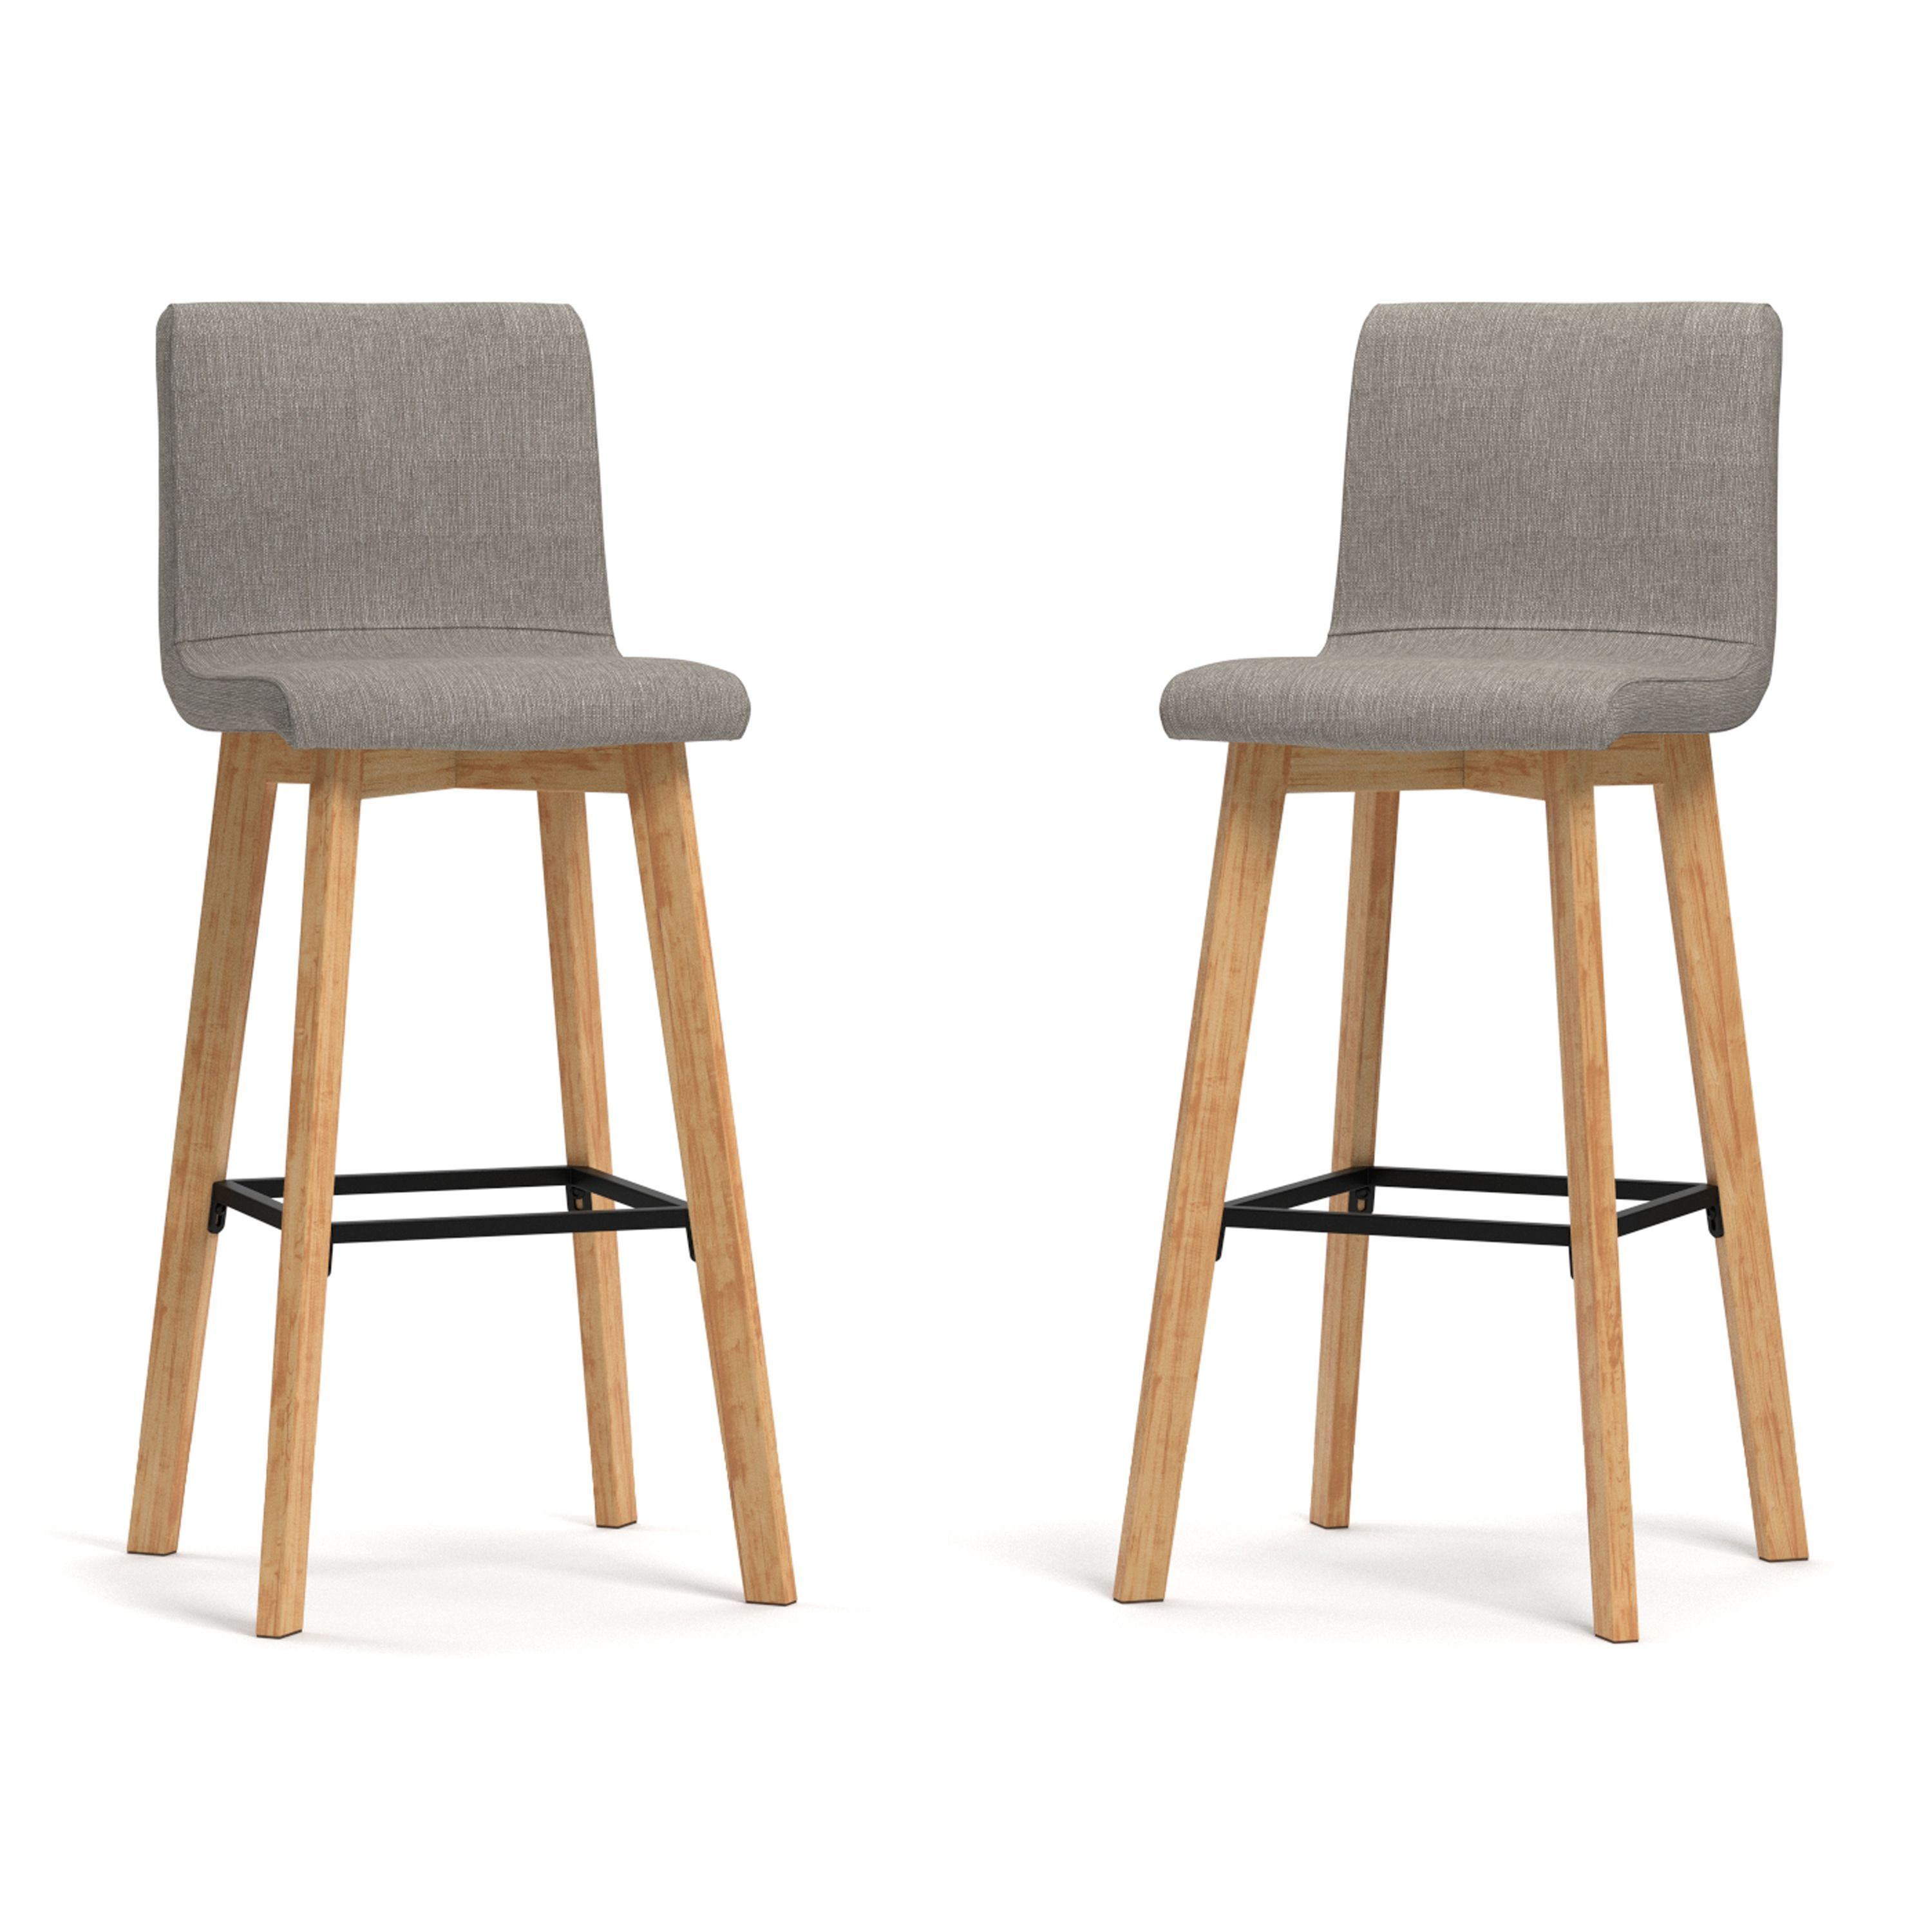 Handy Living Curved Back Dove Grey Linen 30 Inch Bar Stools Set Of